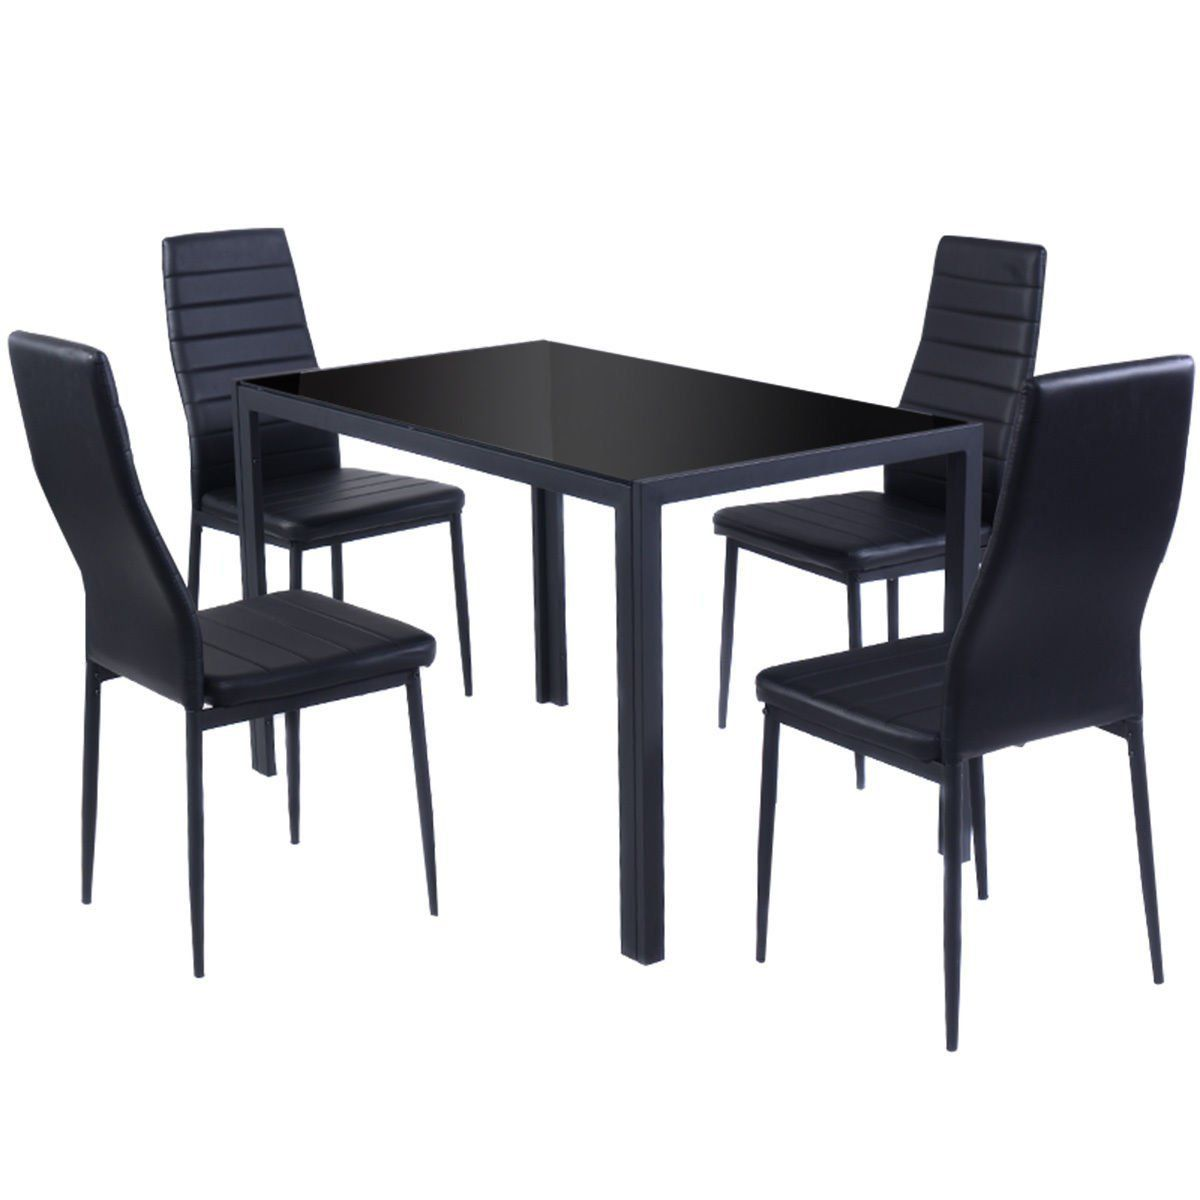 5 Piece Kitchen Dining Set Glass Metal Table and 4 Chairs Breakfast ...